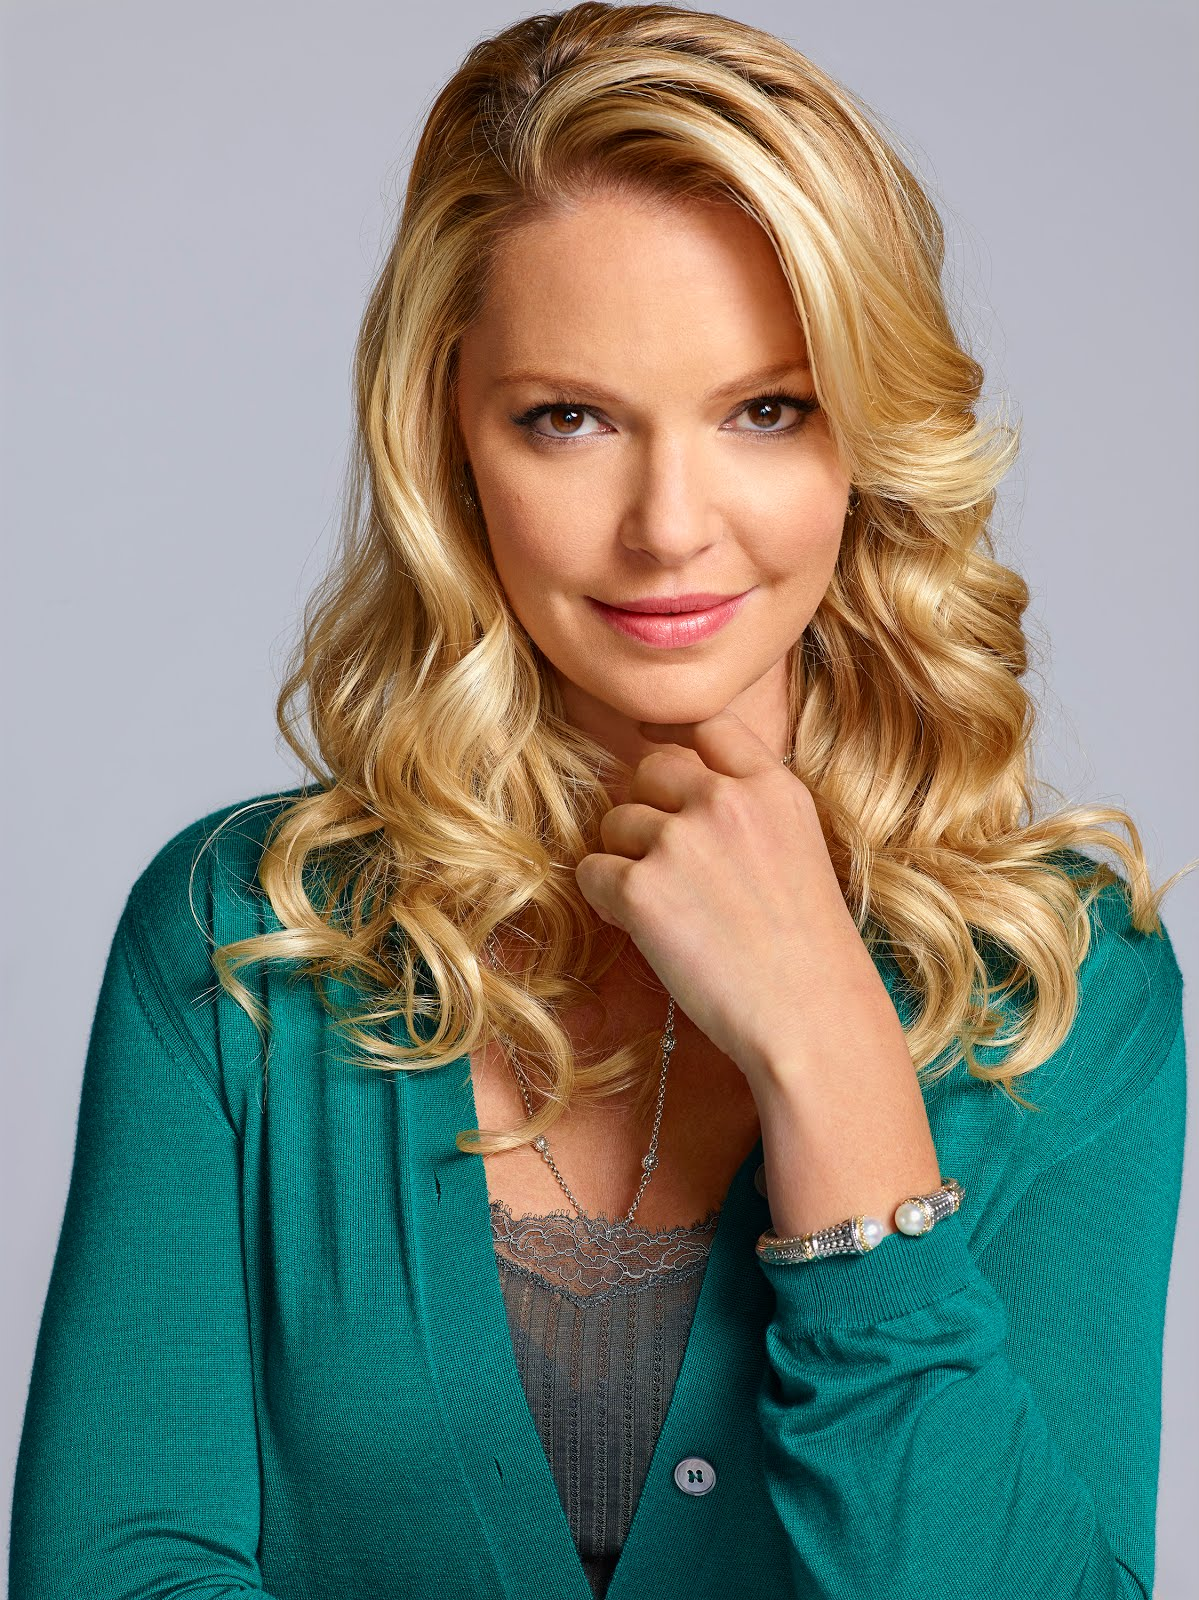 Katherine Heigl born November 24, 1978 (age 39)